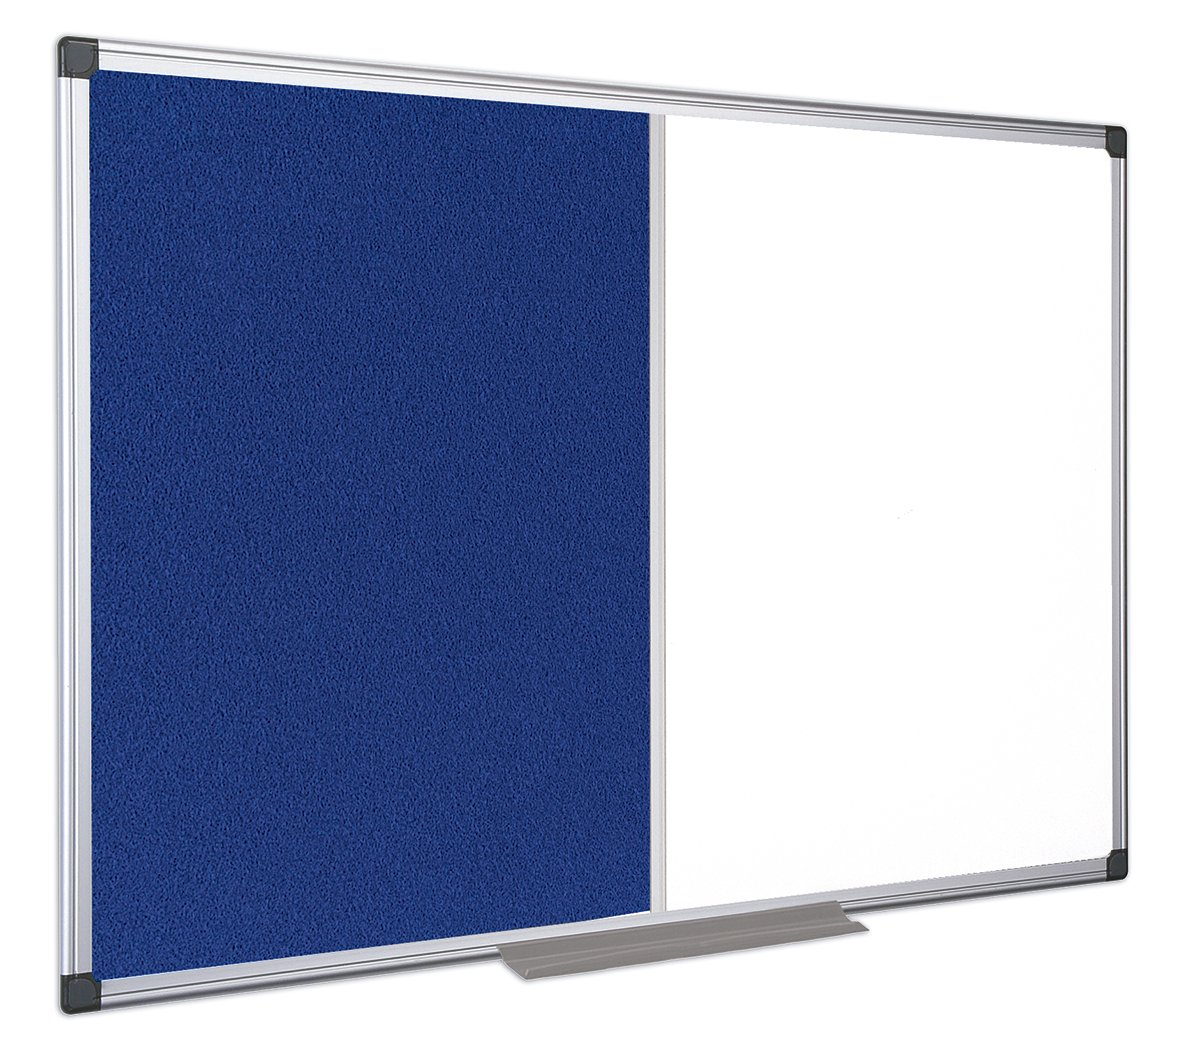 Bi-Office – Maya Combination Magnetic Whiteboard Aluminium Frame Noticeboard 60x45 cm Blue